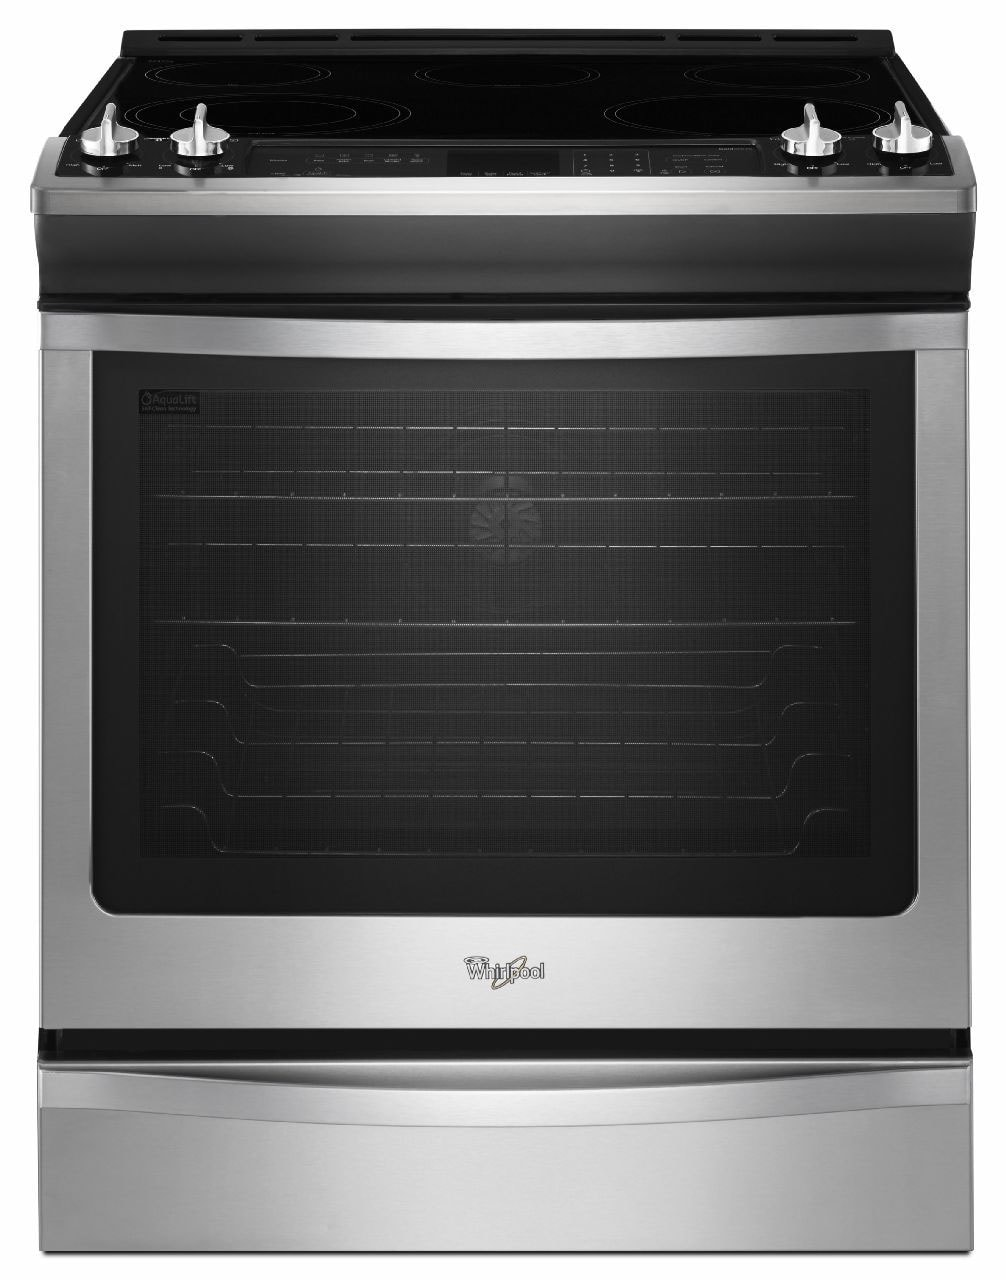 Cooking Products - Whirlpool Stainless Steel Slide-In Electric Convection Range (6.2 Cu. Ft.) - YWEE730H0DS